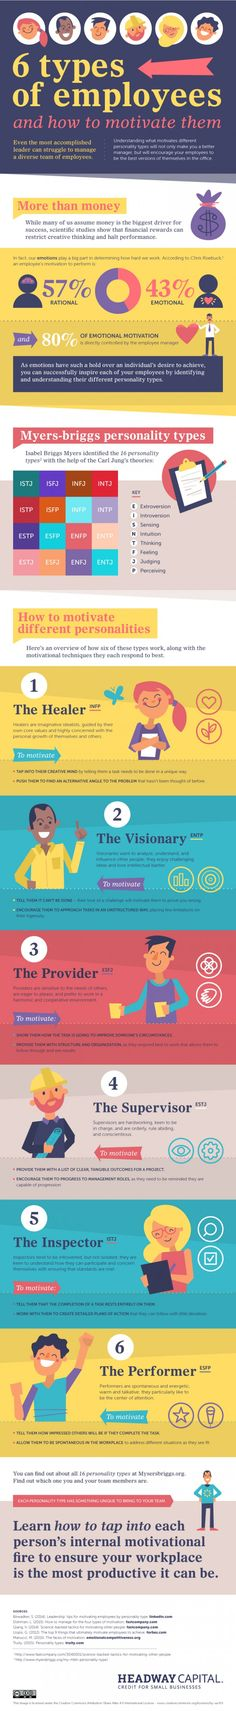 6 Types of Employees and How to Motivate Them [Infographic] | Daily Infographic